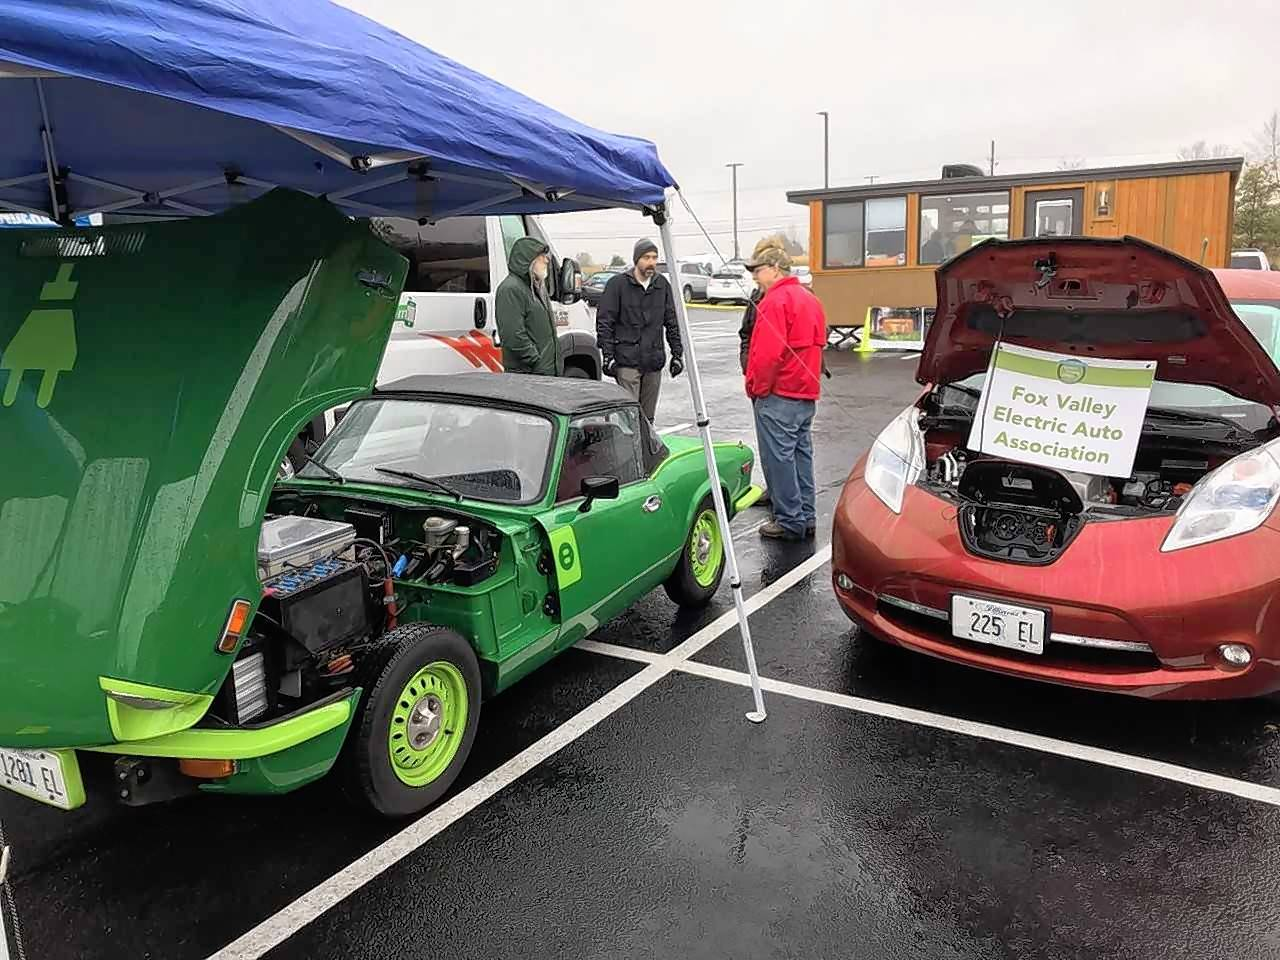 McHenry County College's annual Green Living Expo on Nov. 3 will feature a variety of sustainable resources and vendors, sustainable artwork by local artists, luxury electric cars and conventional cars remodeled to be electric, and electric and conventional bikes.